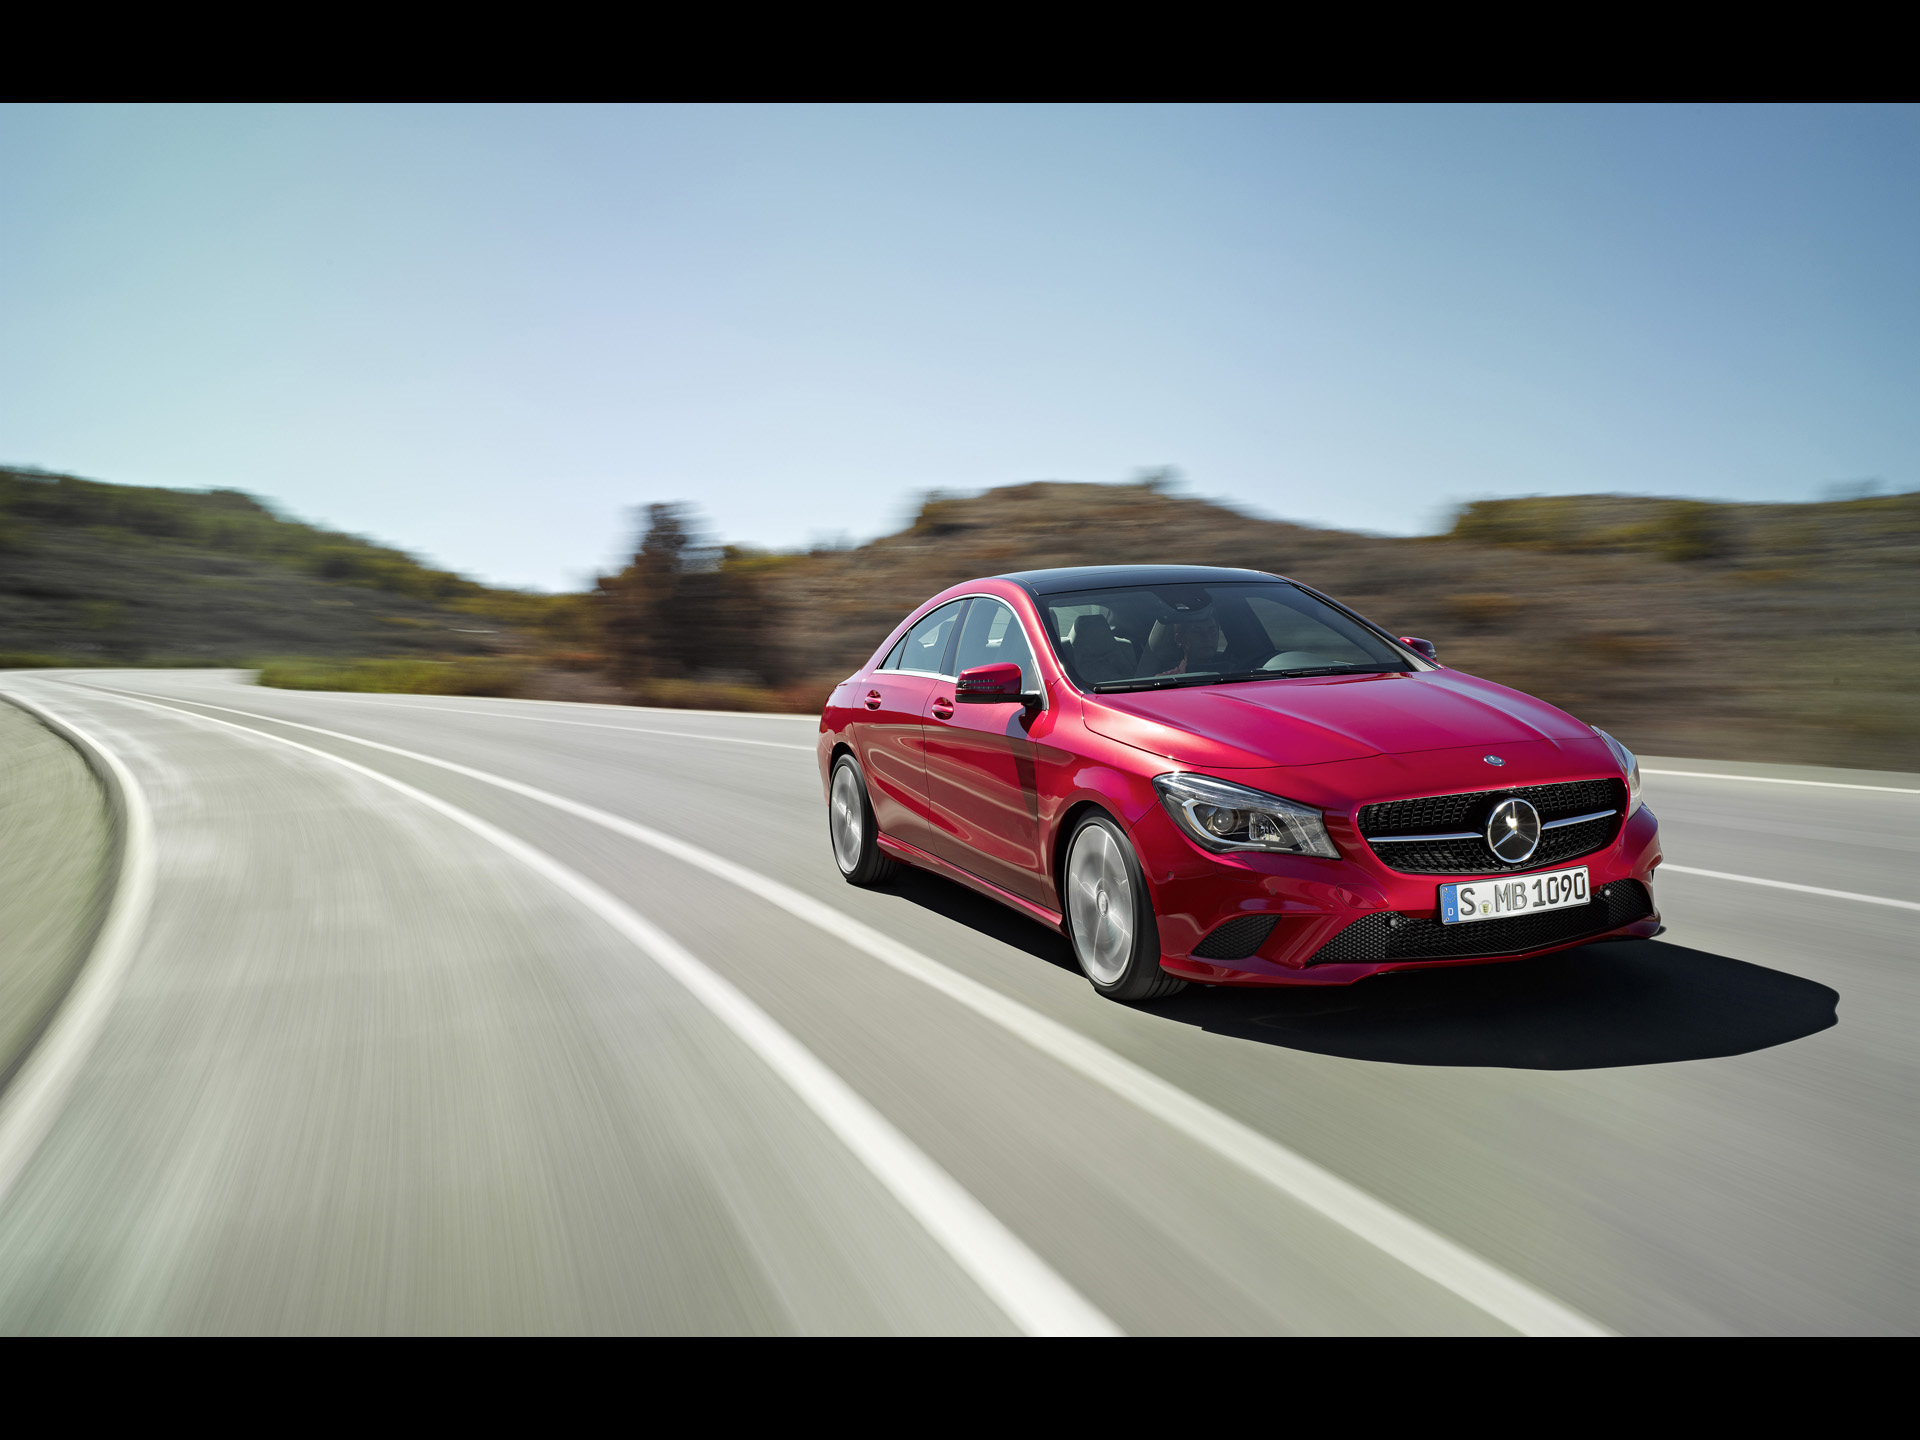 Super Cars Image of Mercedes Benz CLA, on Straight Road, Feeling Safe Enough 1920X1440 free wallpaper download